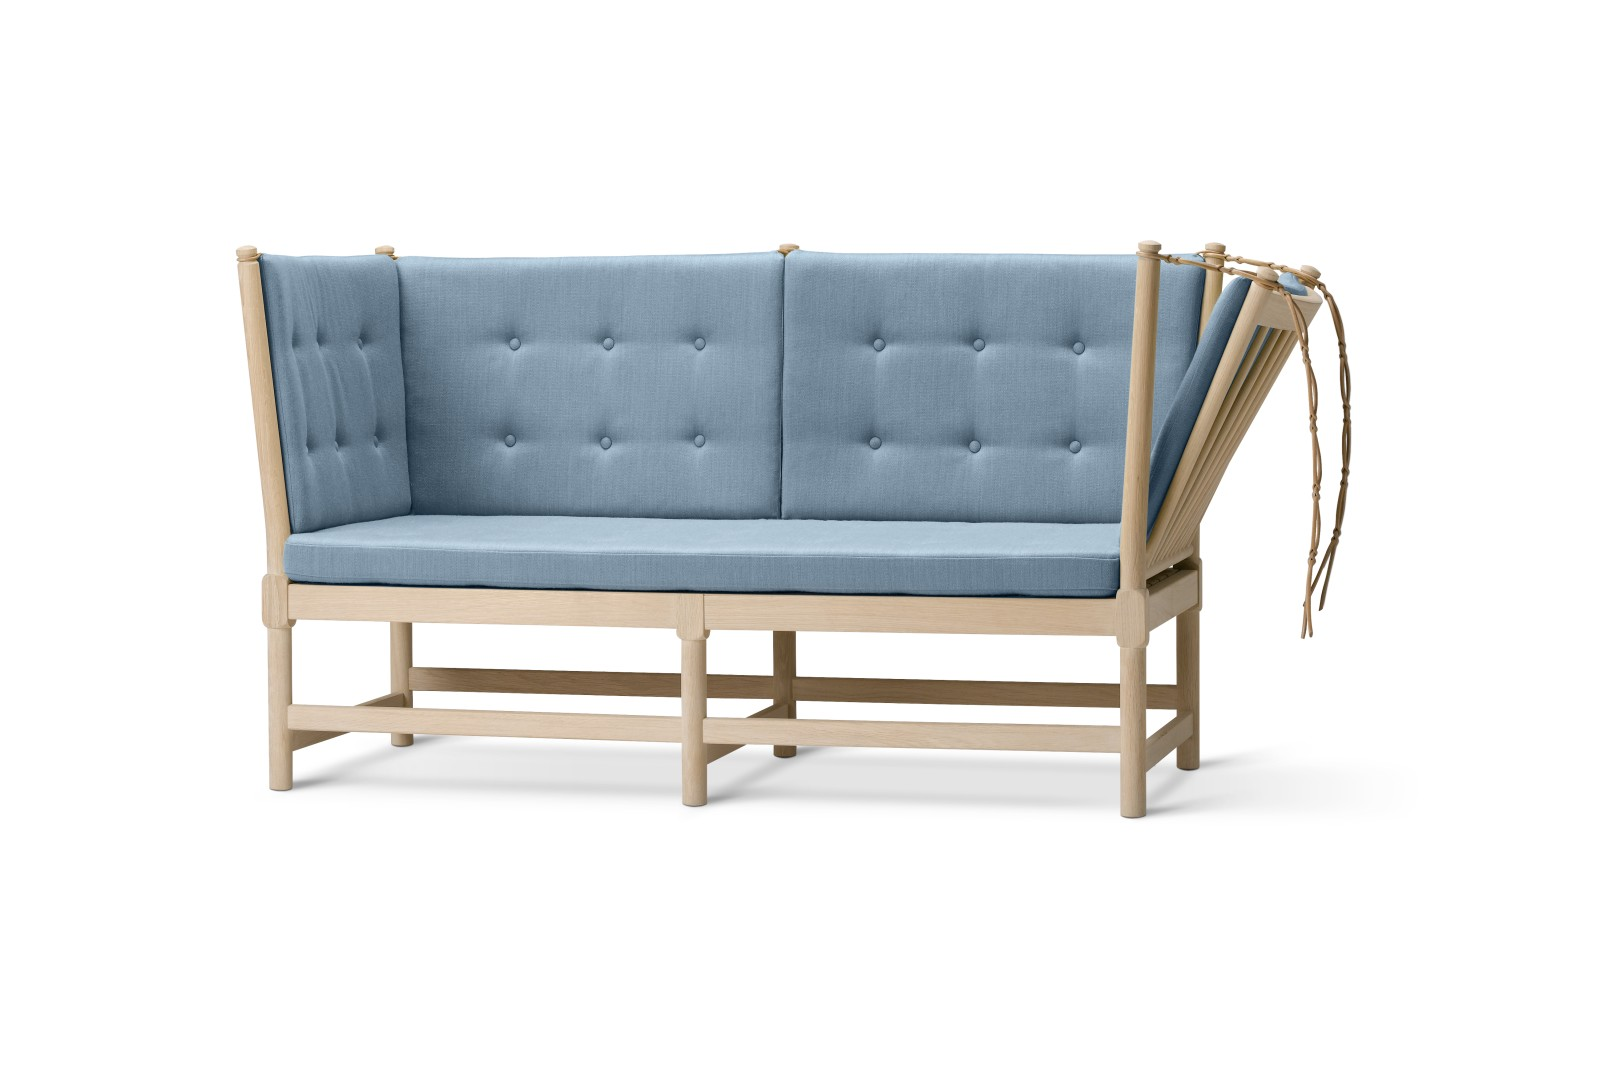 Spoke-Back Sofa, 2 Seater With Pattern Upholstery With Buttons, Oak Soap Treated, Remix 2 113